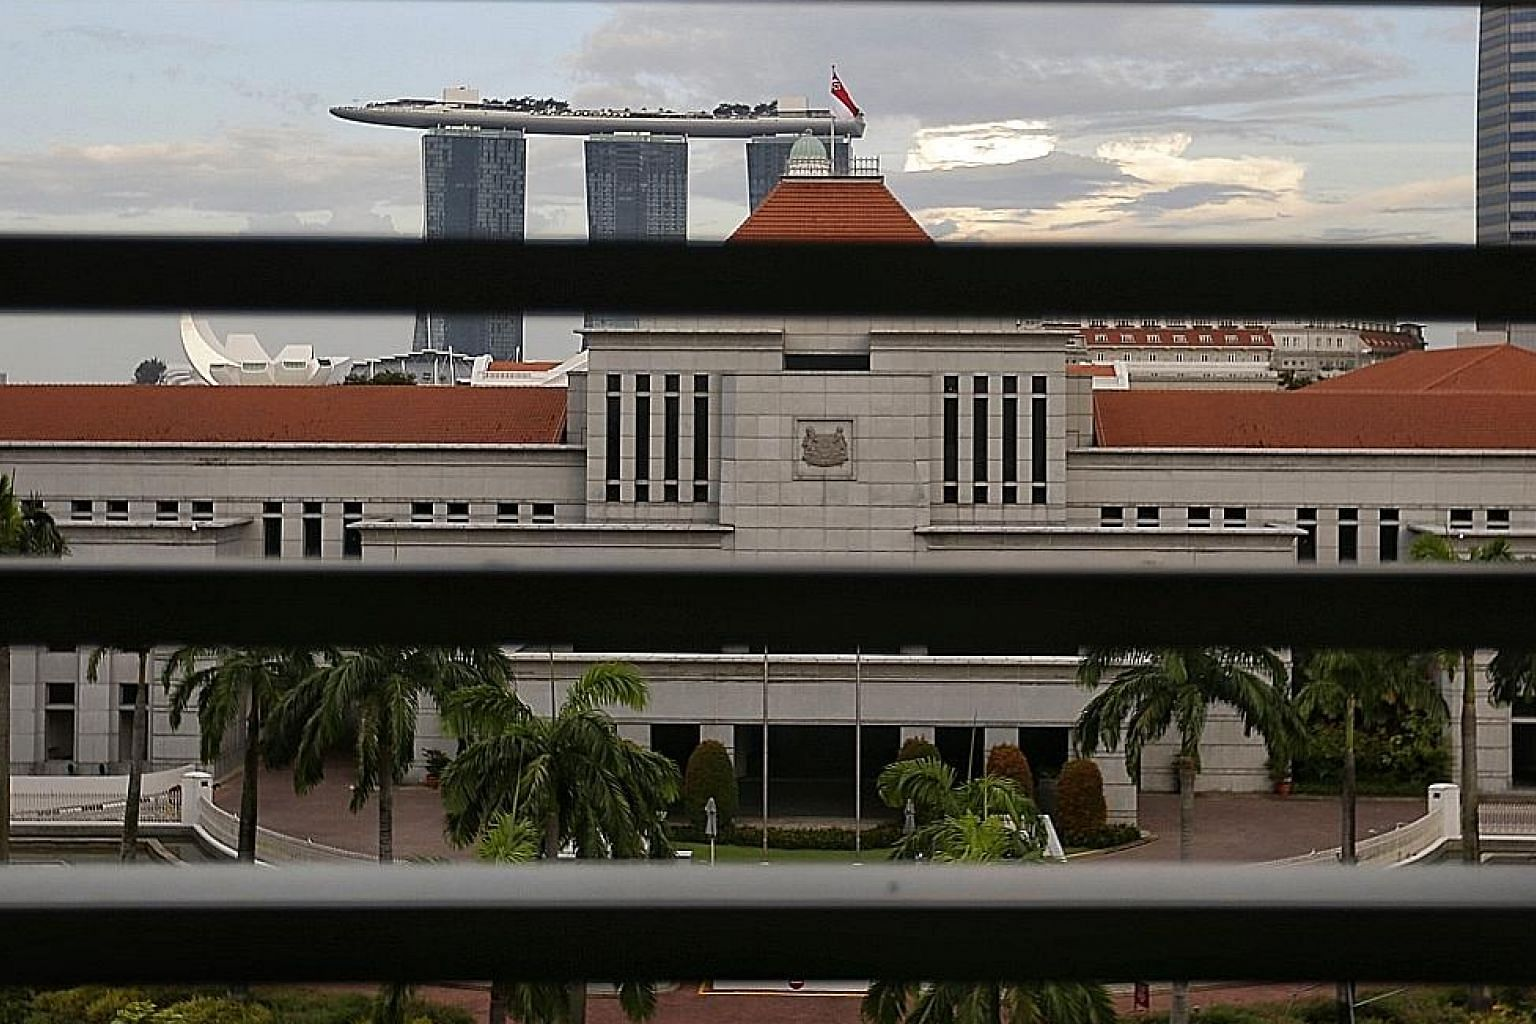 When Parliament meets today, Prime Minister Lee Hsien Loong will address allegations of abuse of power that his siblings have made against him, and Deputy PM Teo Chee Hean will speak about the ministerial committee.